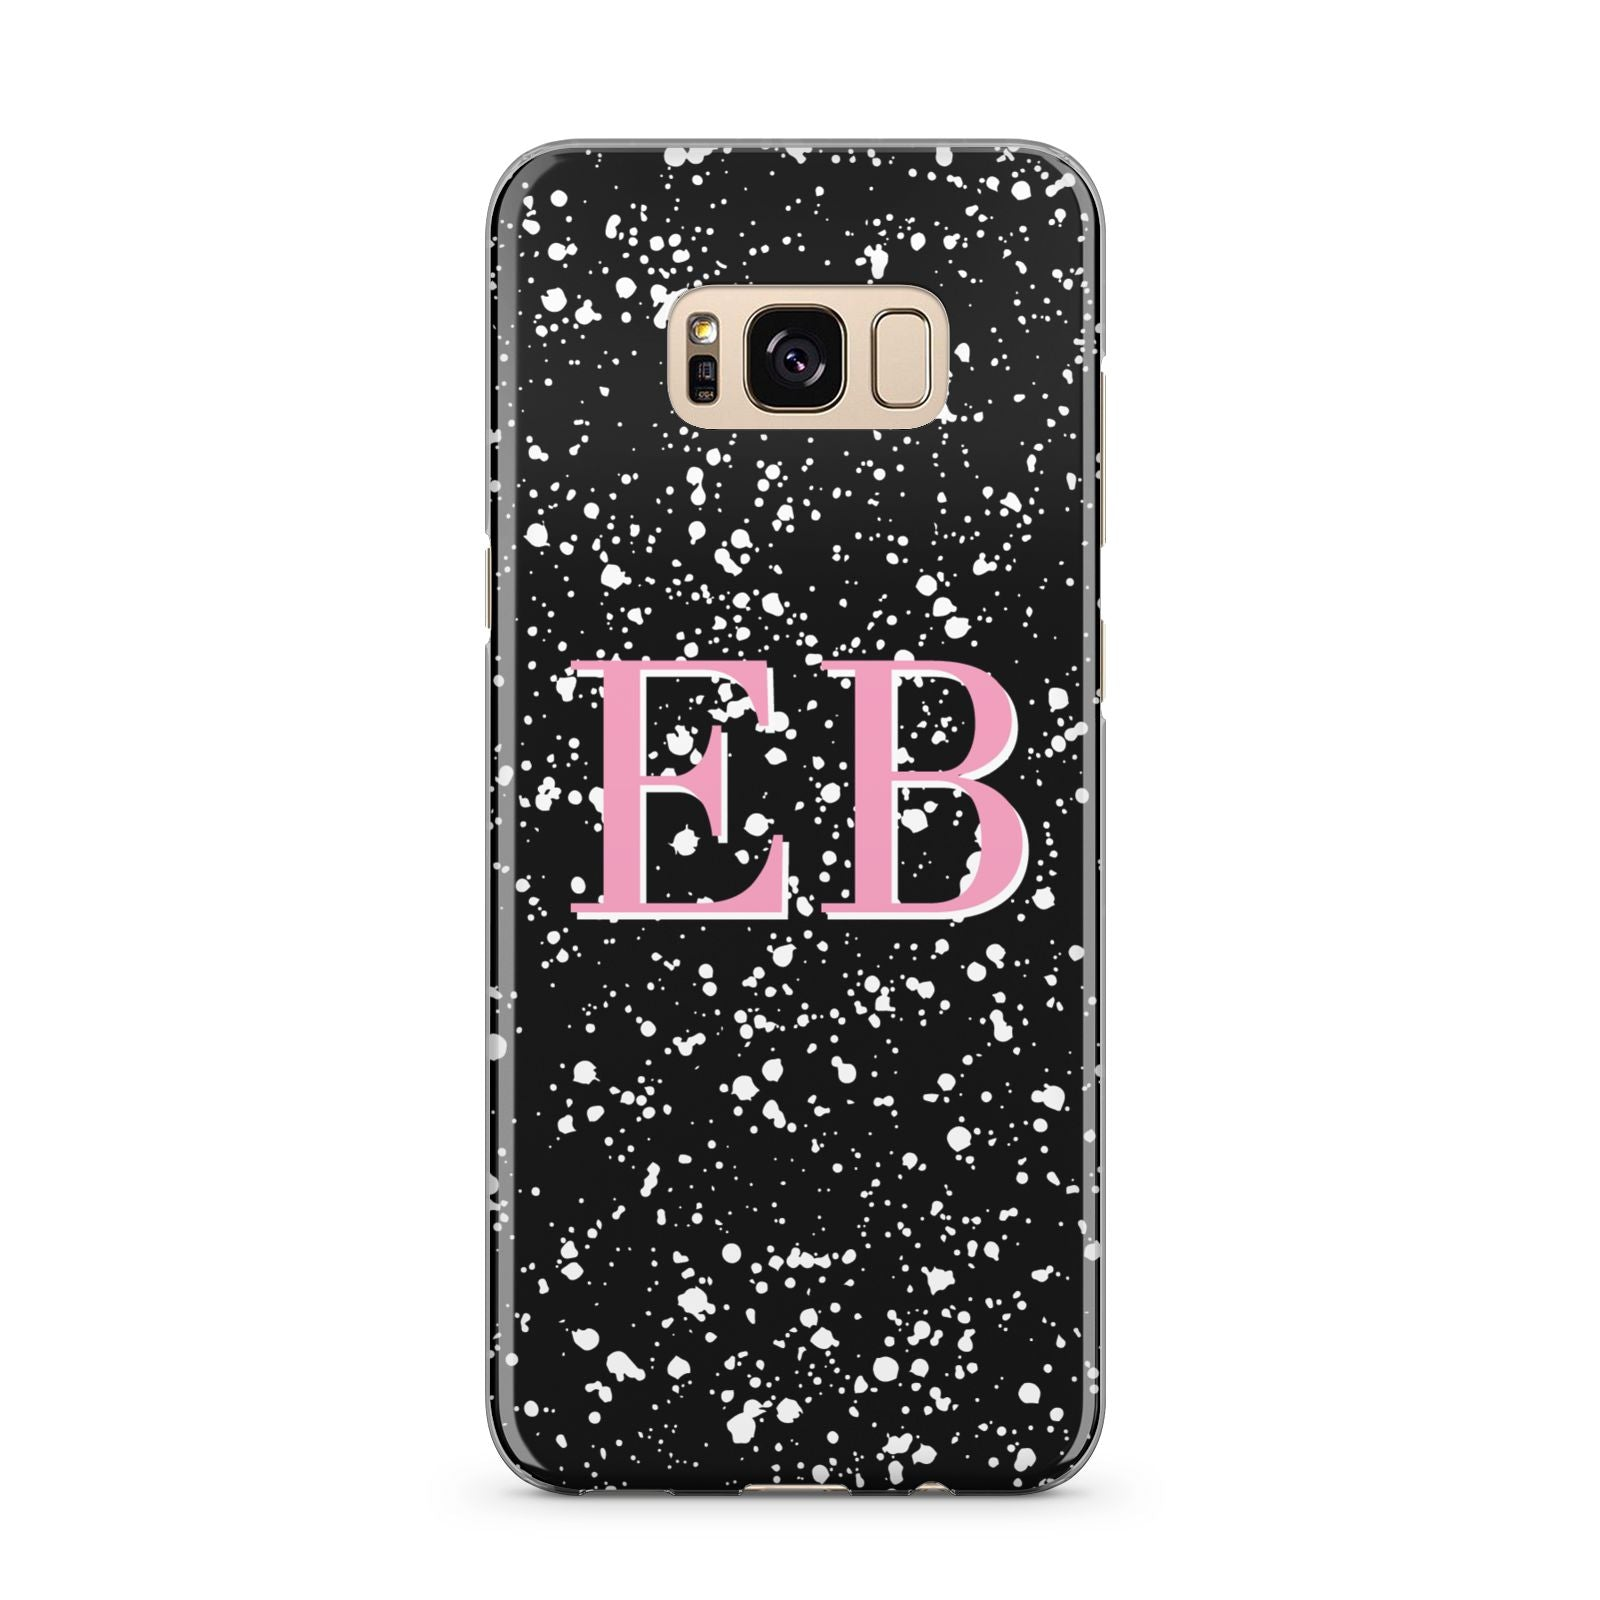 Personalised Black Ink Splat Initials Samsung Galaxy S8 Plus Case